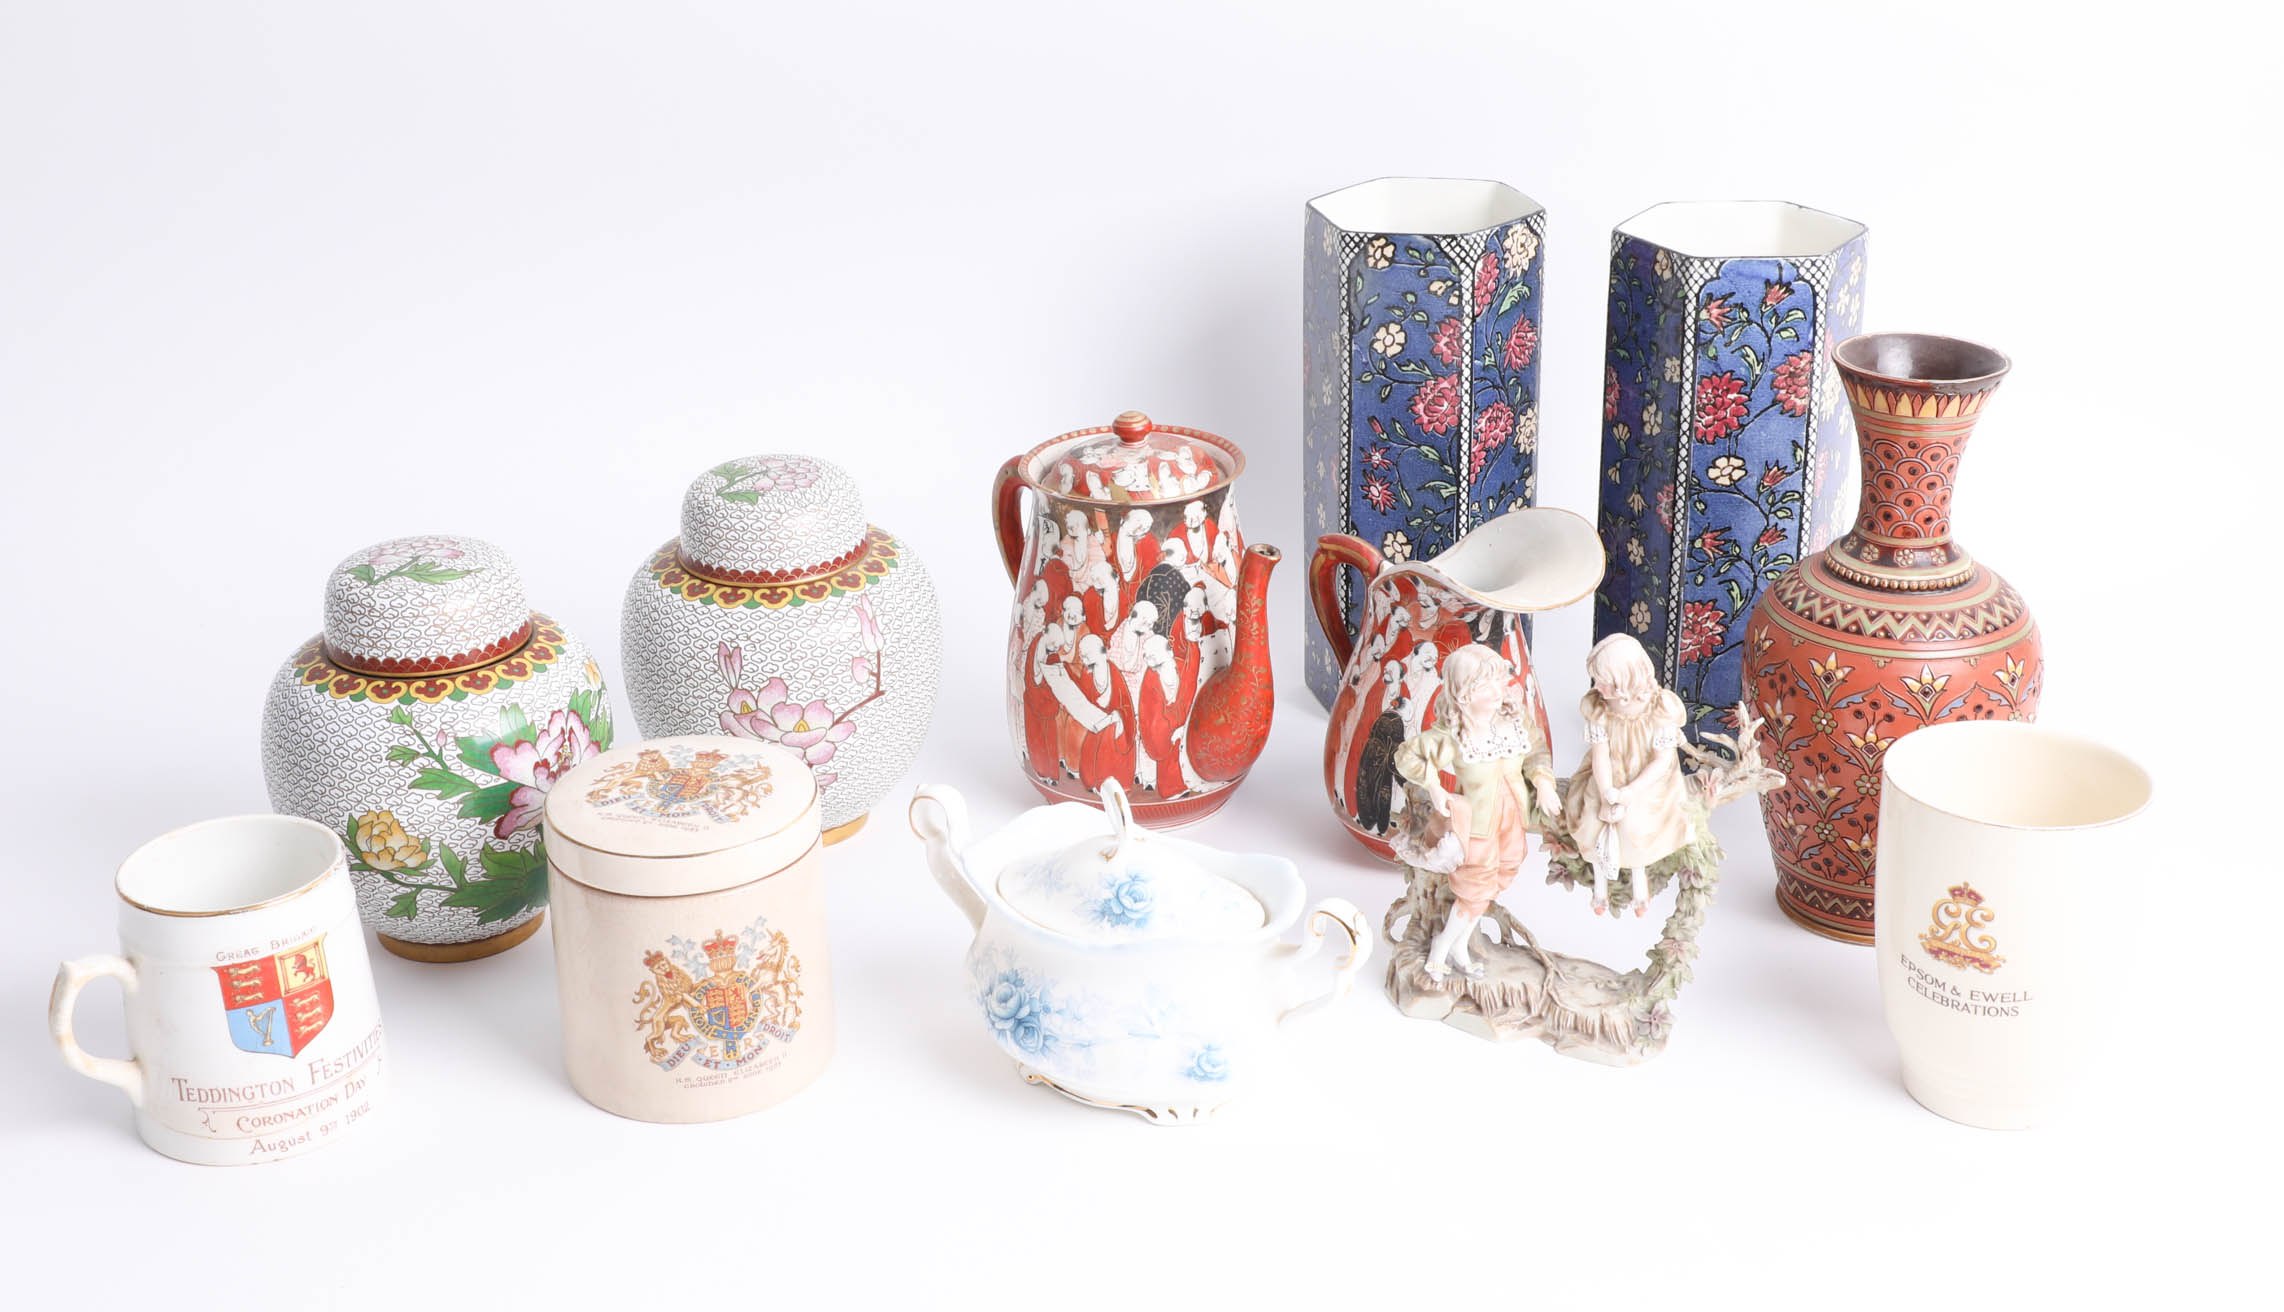 Lot 002 - Mettlach art pottery vase (restored) and other china wares including pair of Doulton art vases,